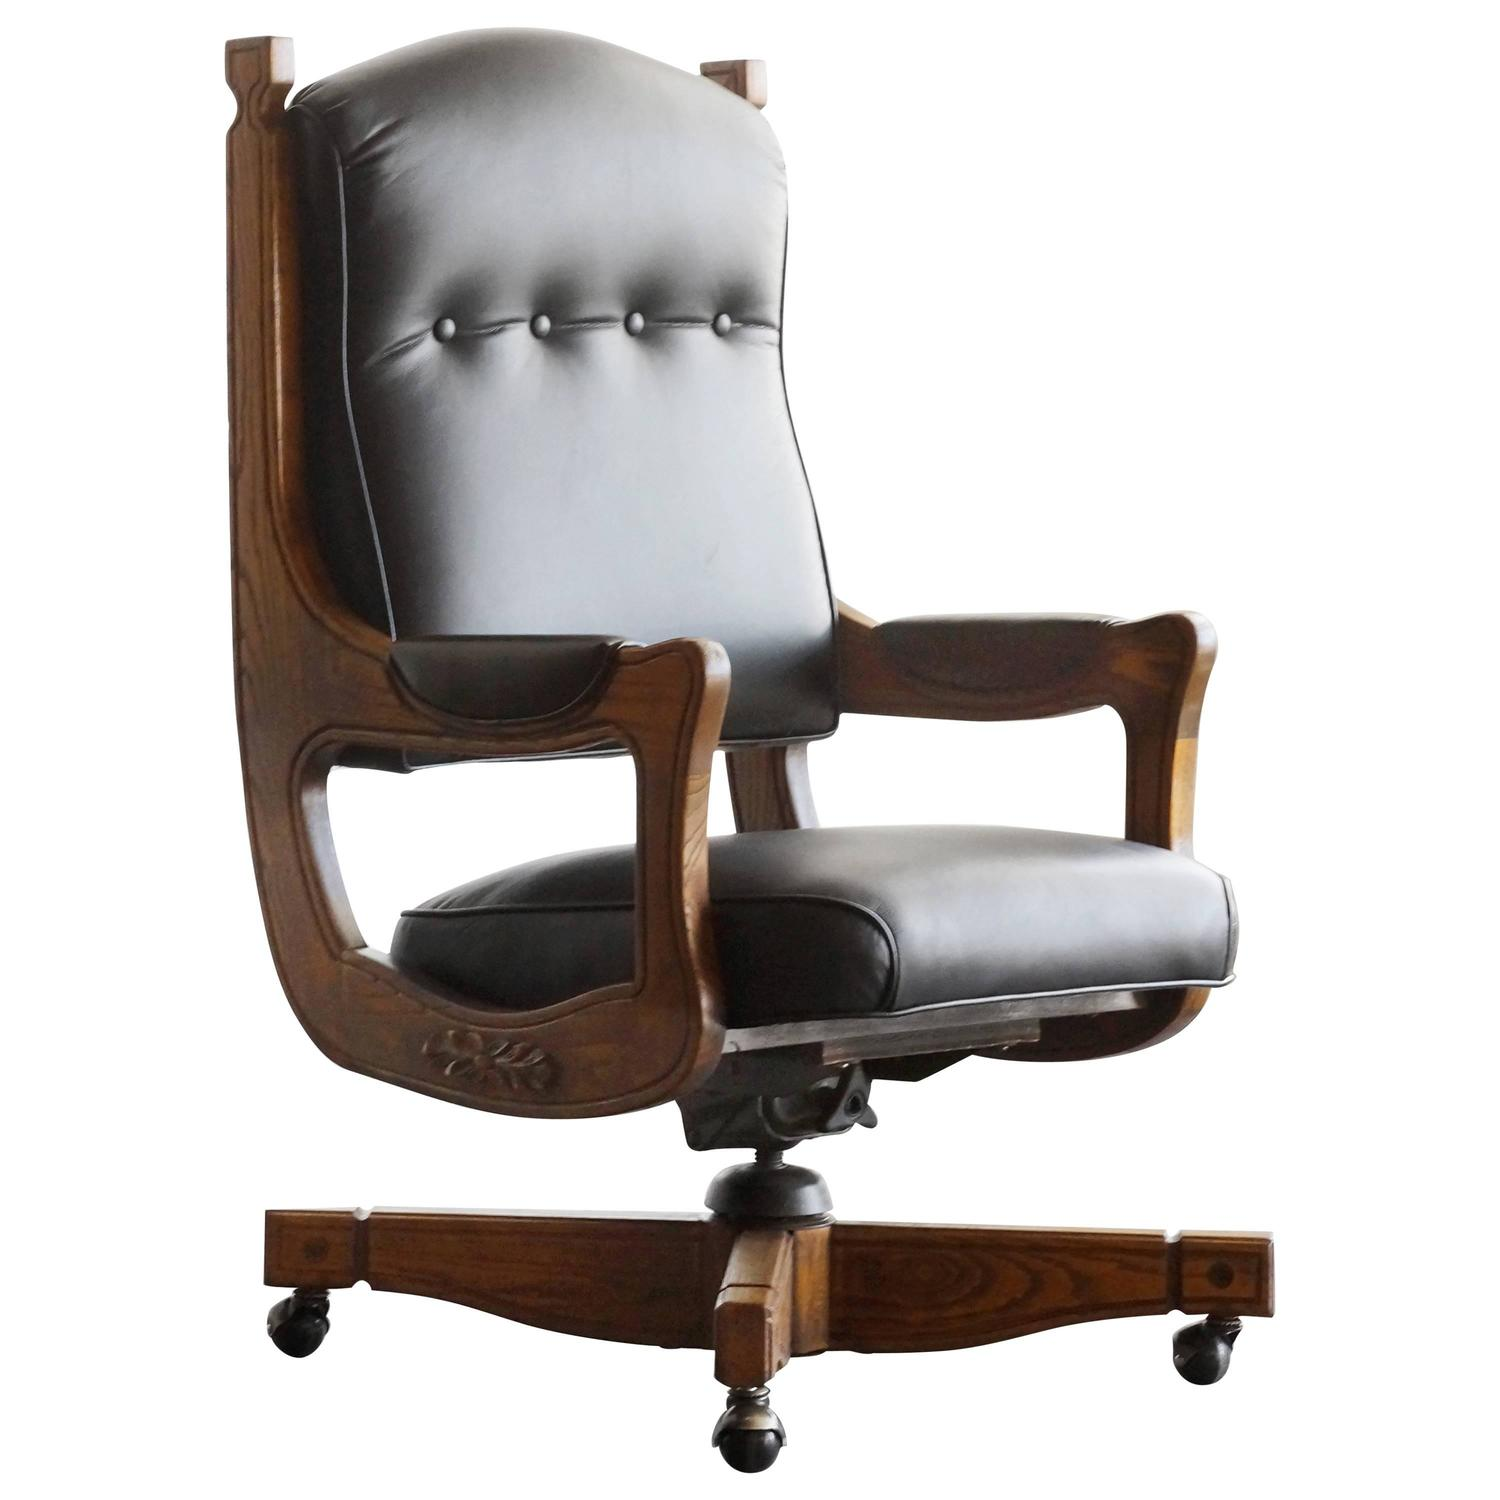 Antique chesterfield captains chair in oak and leather at for Antique leather chairs